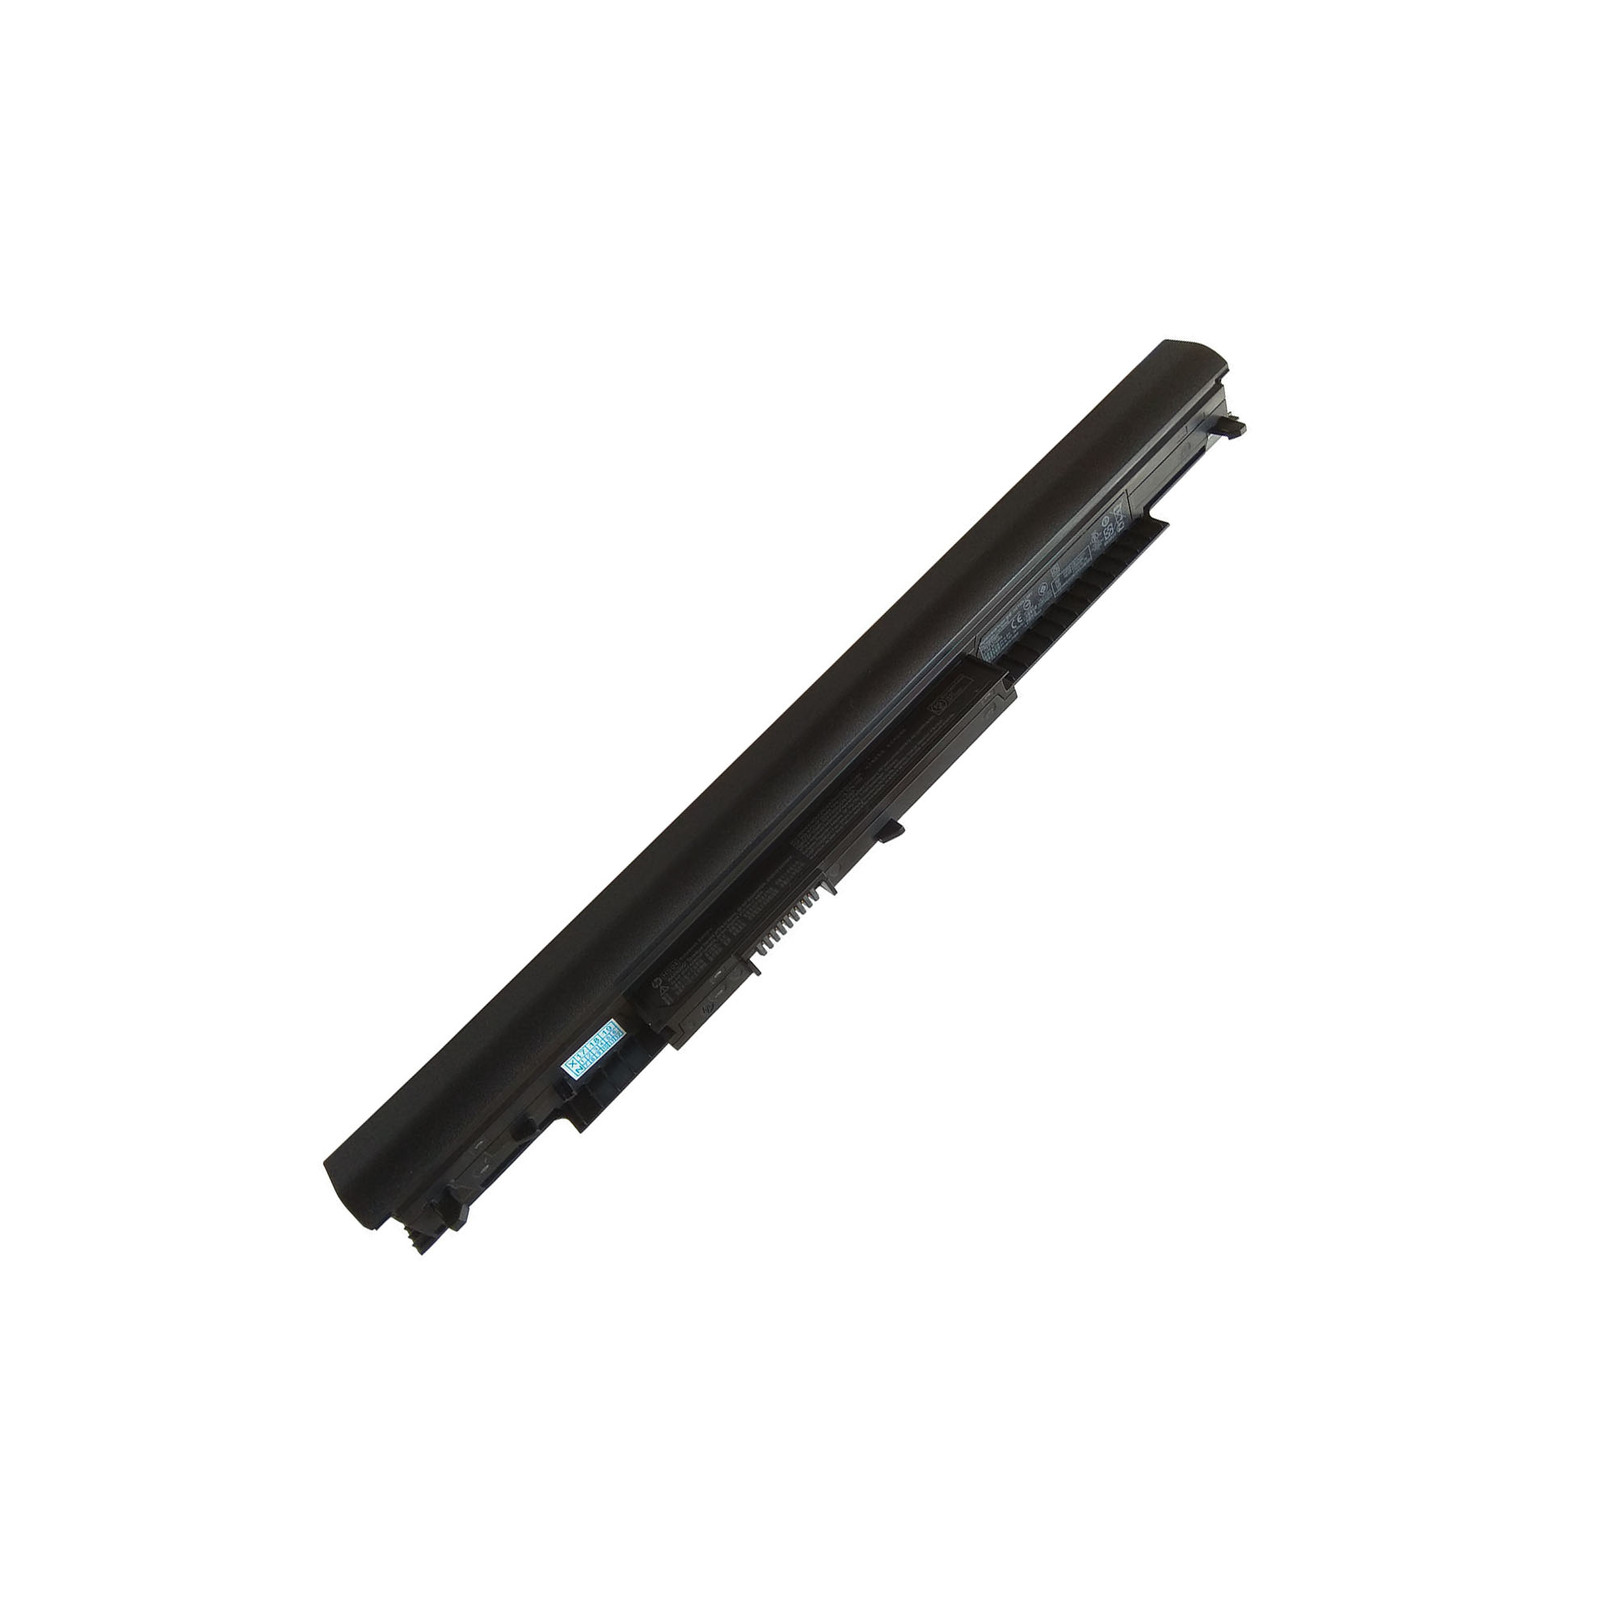 Primary image for HP 15-AC146NF T8U00EA Battery 807957-001 HS04 807612-141 HSTNN-IB7B HSTNN-PB6T